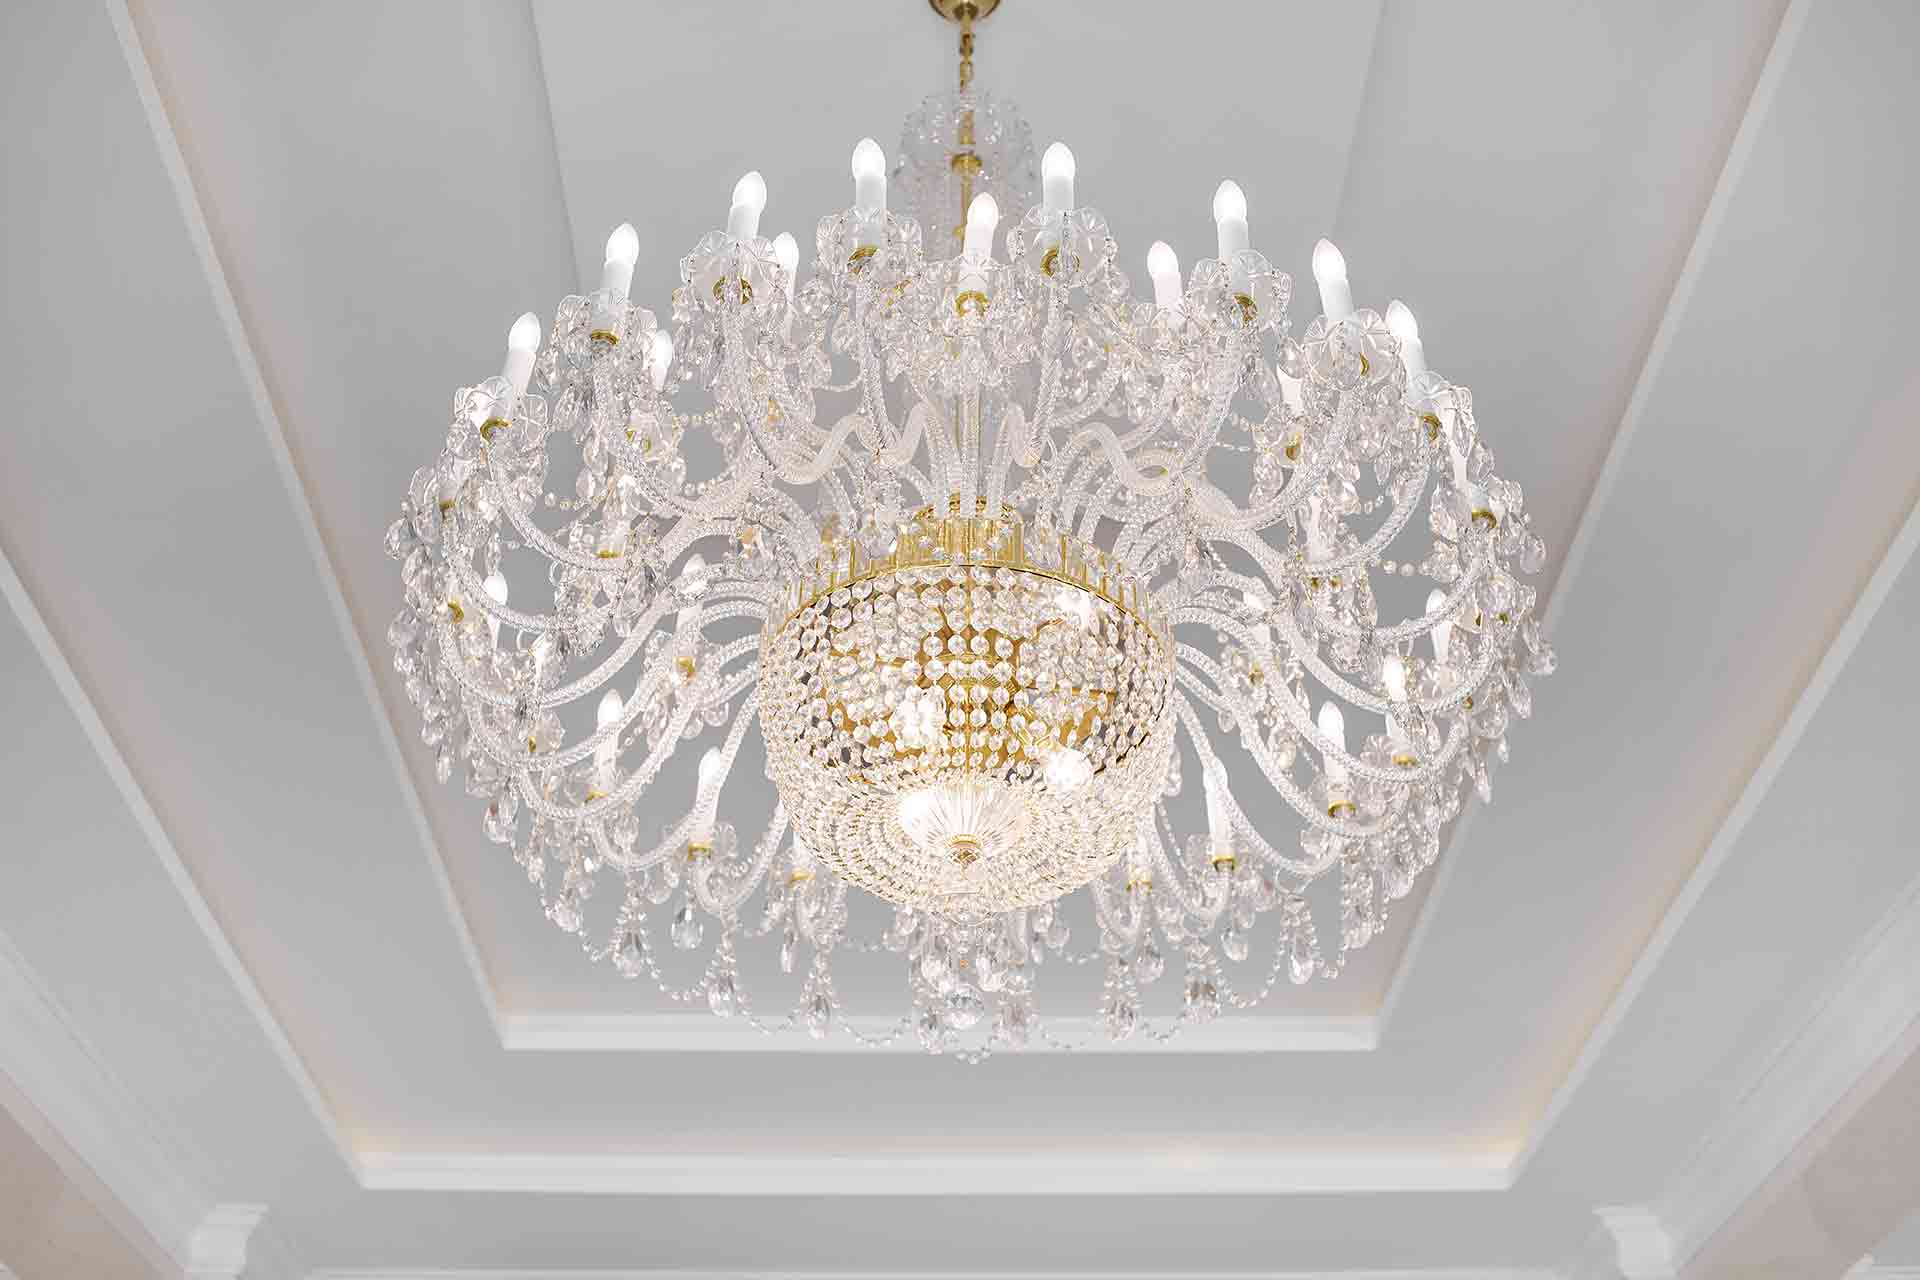 Cost To Hang A Chandelier, How Much Does It Cost To Install Chandelier